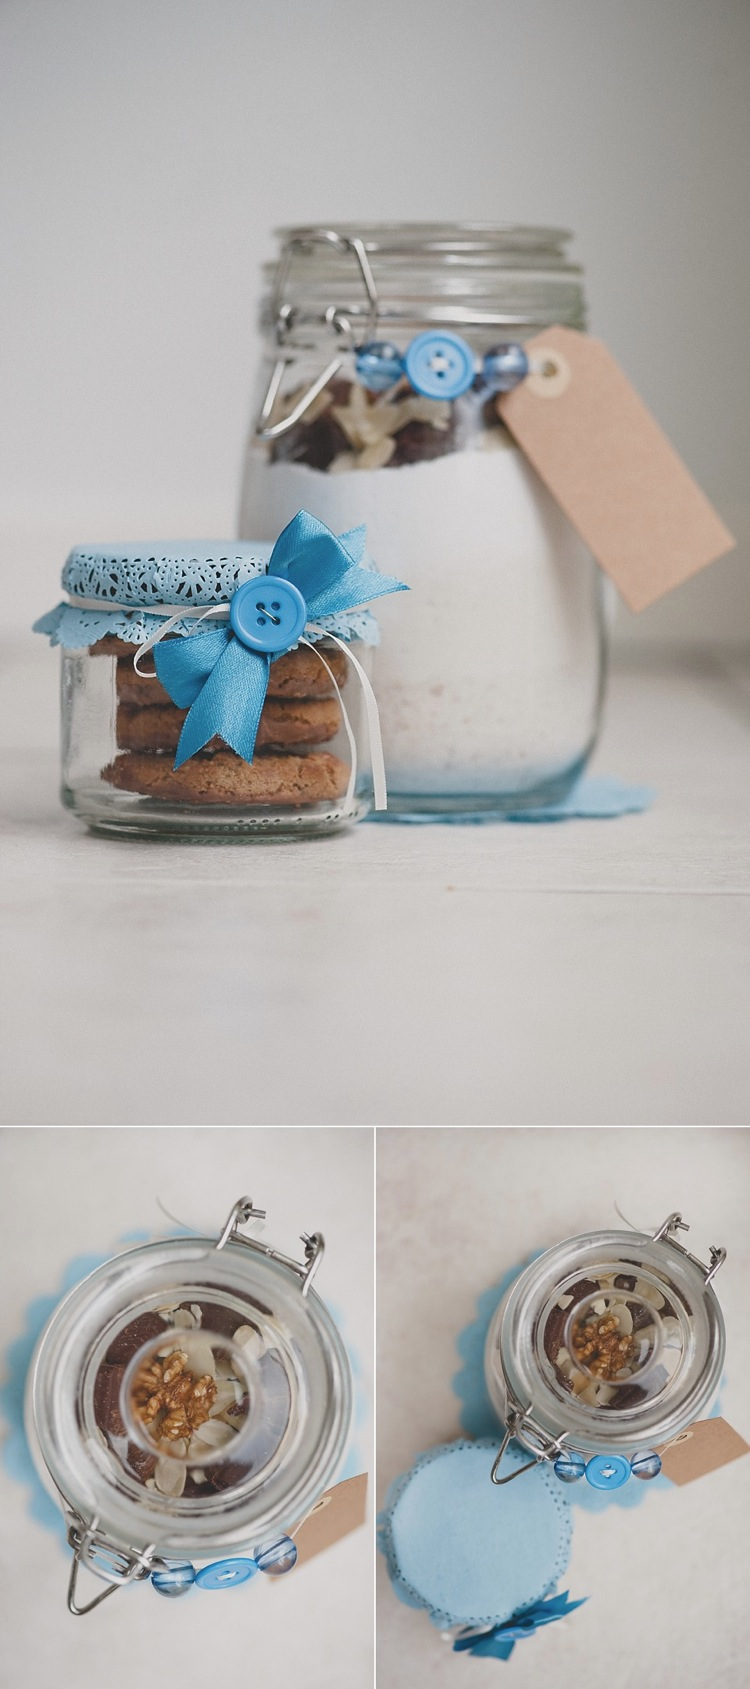 DIY simple easy creative Christmas ideas 5: Christmas cookie mix ...